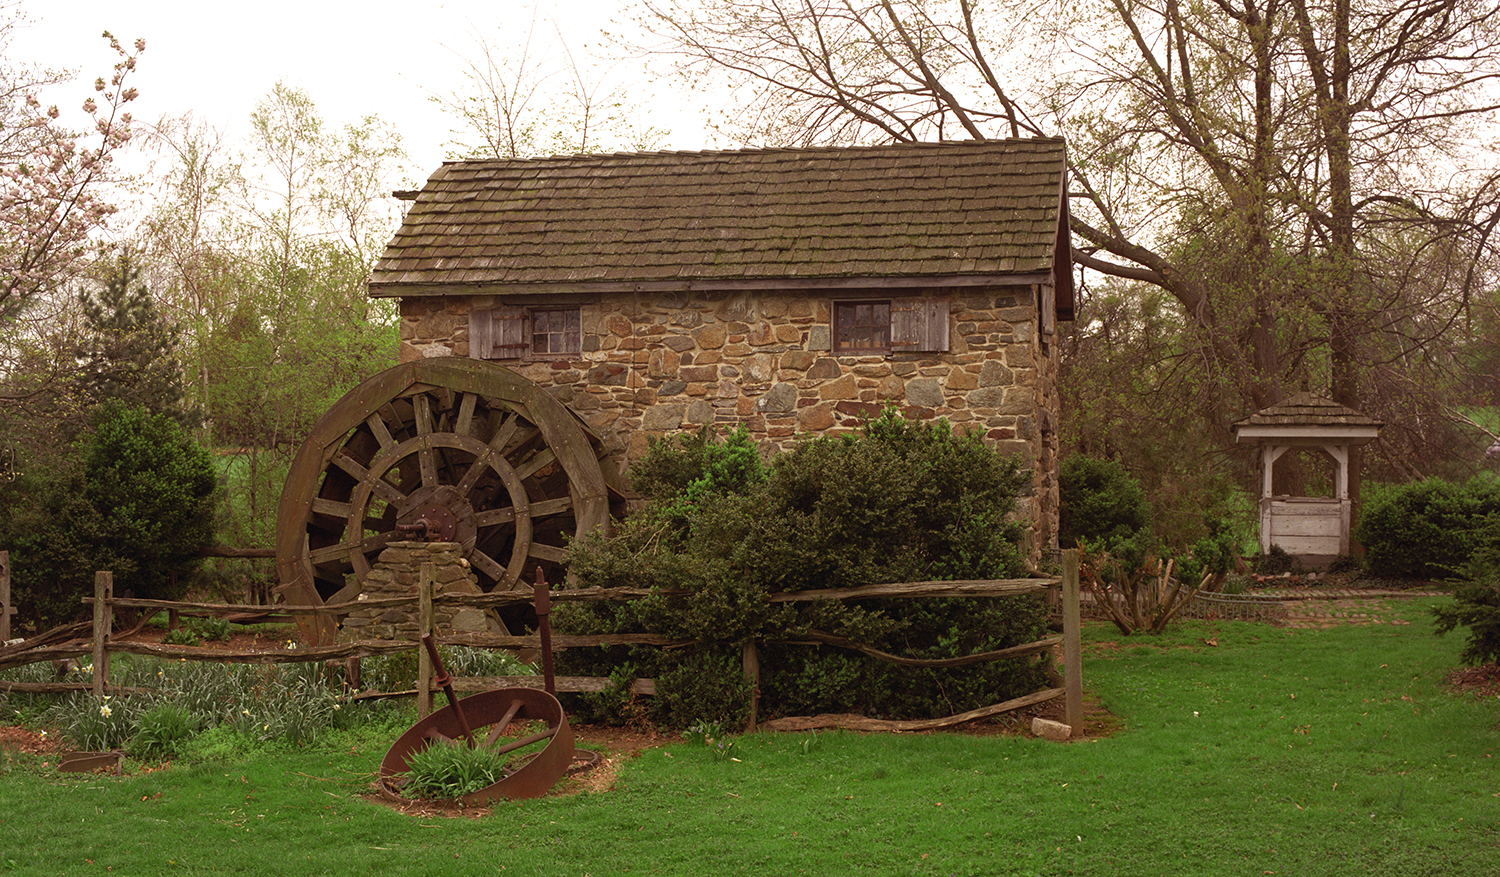 The Mill at Evans Farm